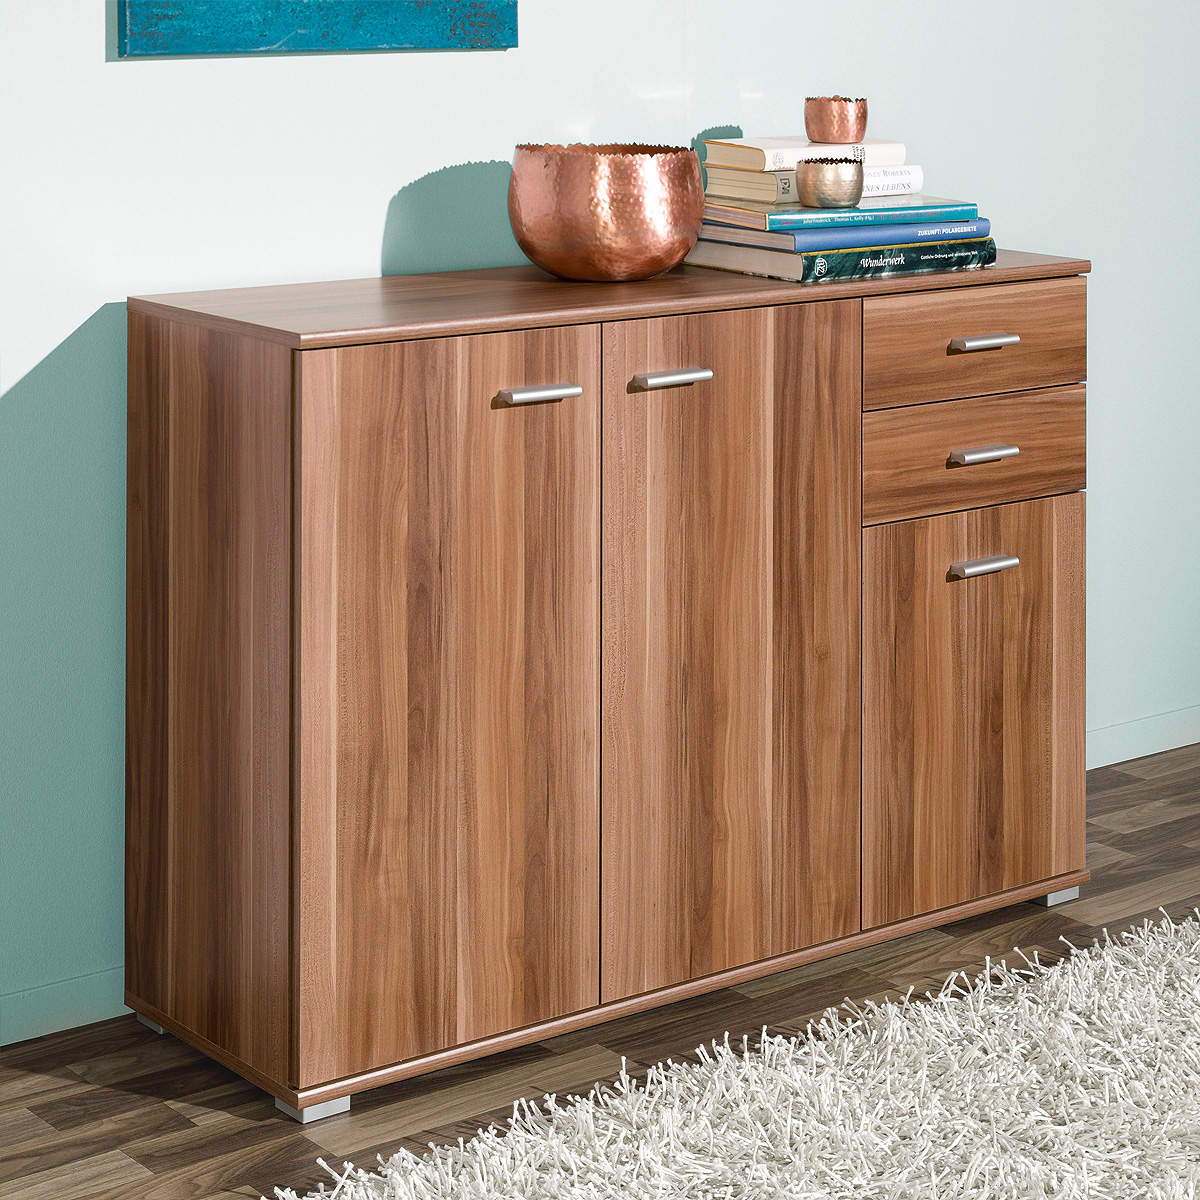 kommode p92 sideboard anrichte schrank wei eiche buche nussbaum von cs schmal ebay. Black Bedroom Furniture Sets. Home Design Ideas